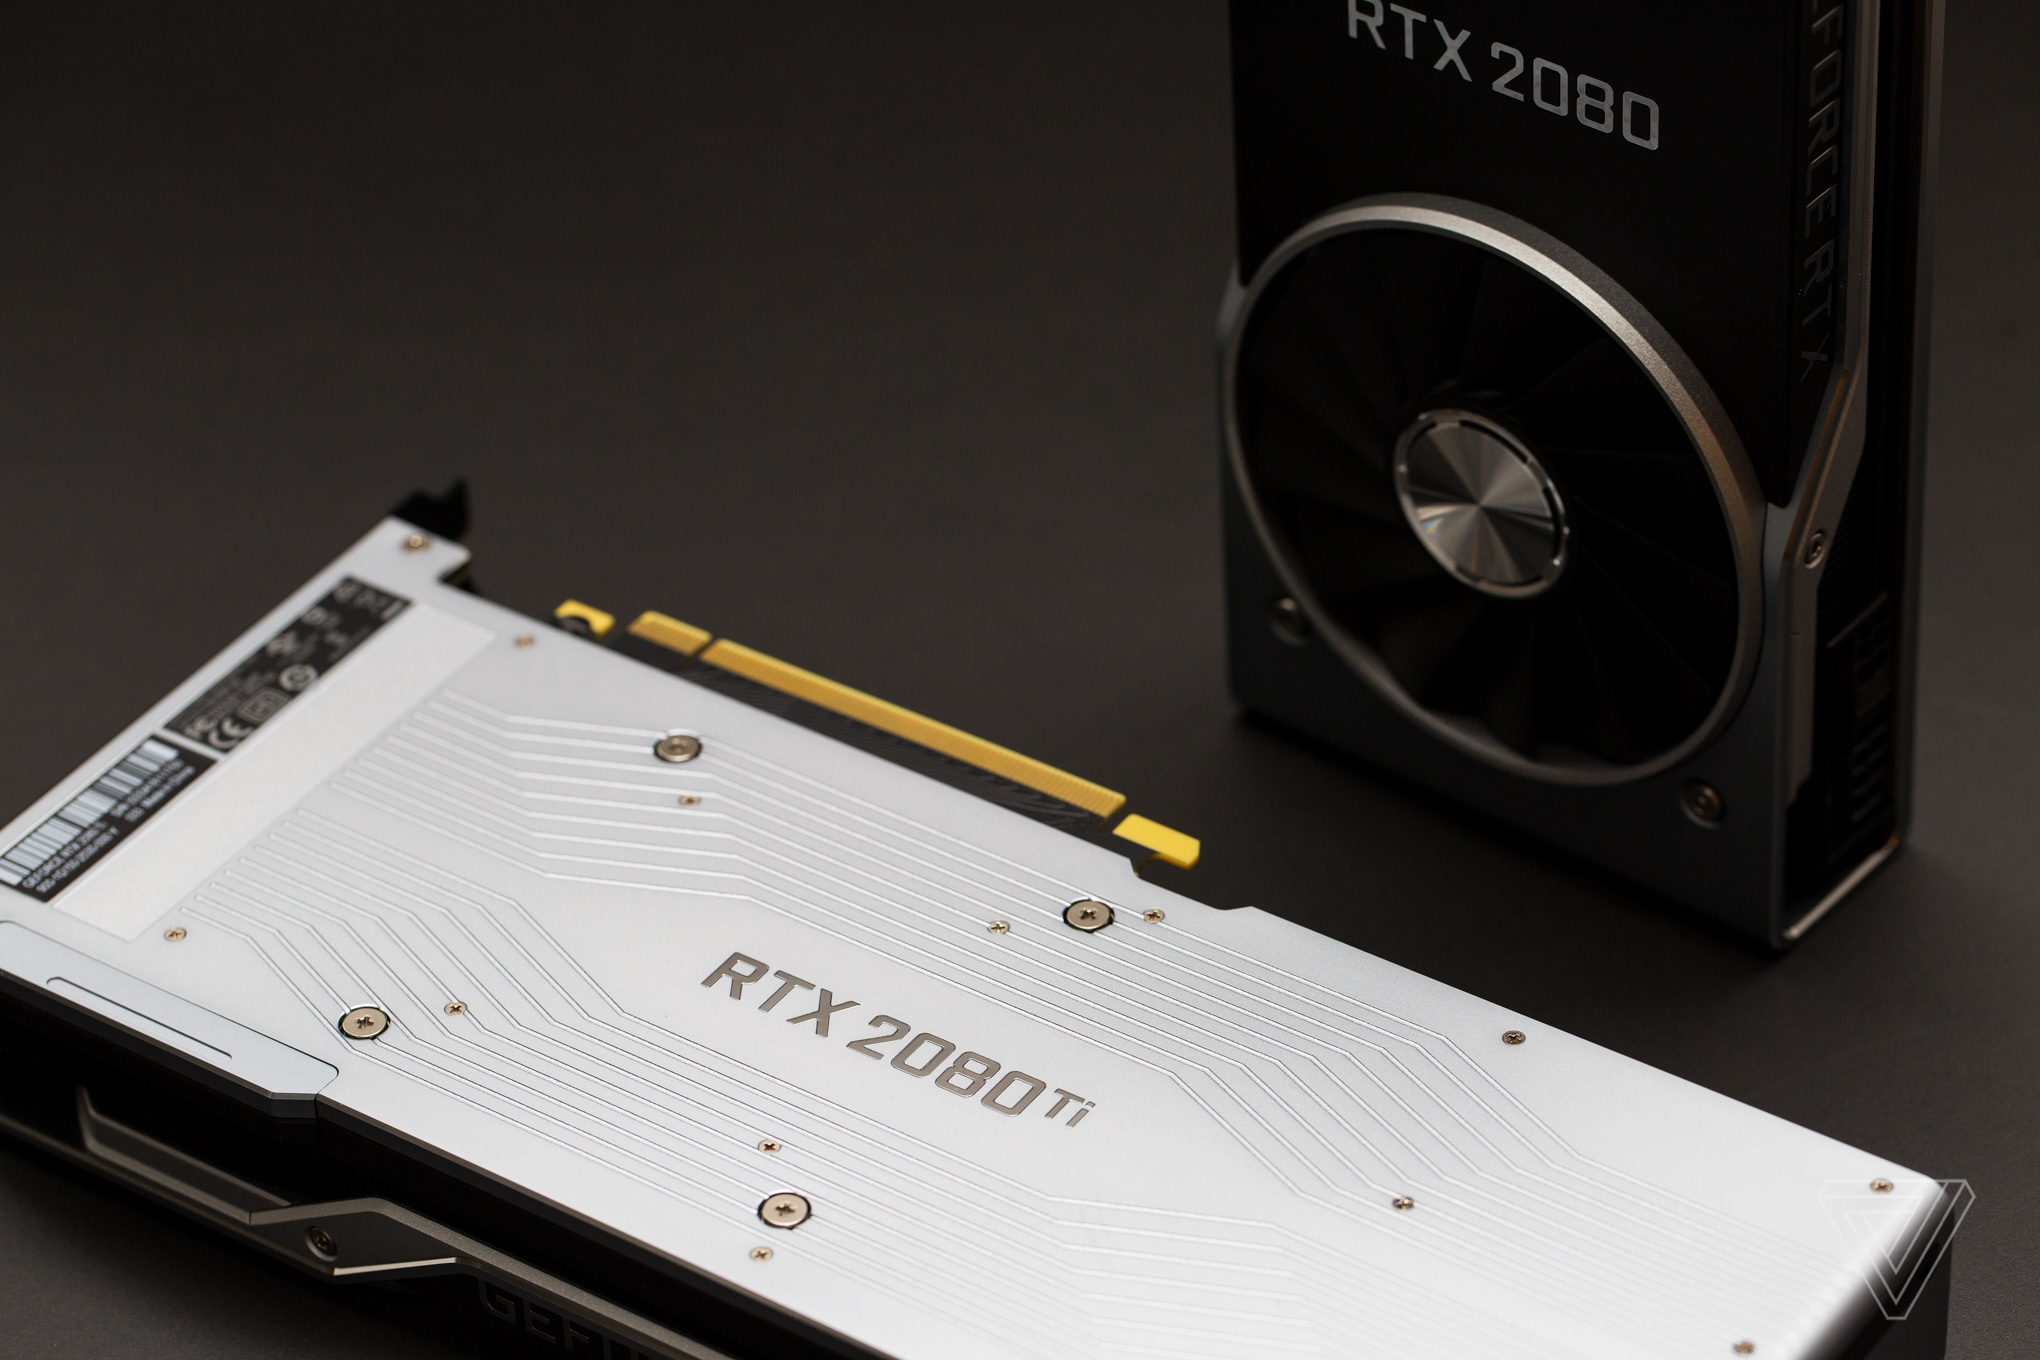 Nvidia GeForce RTX 2080 review: 4K gaming is here, at a